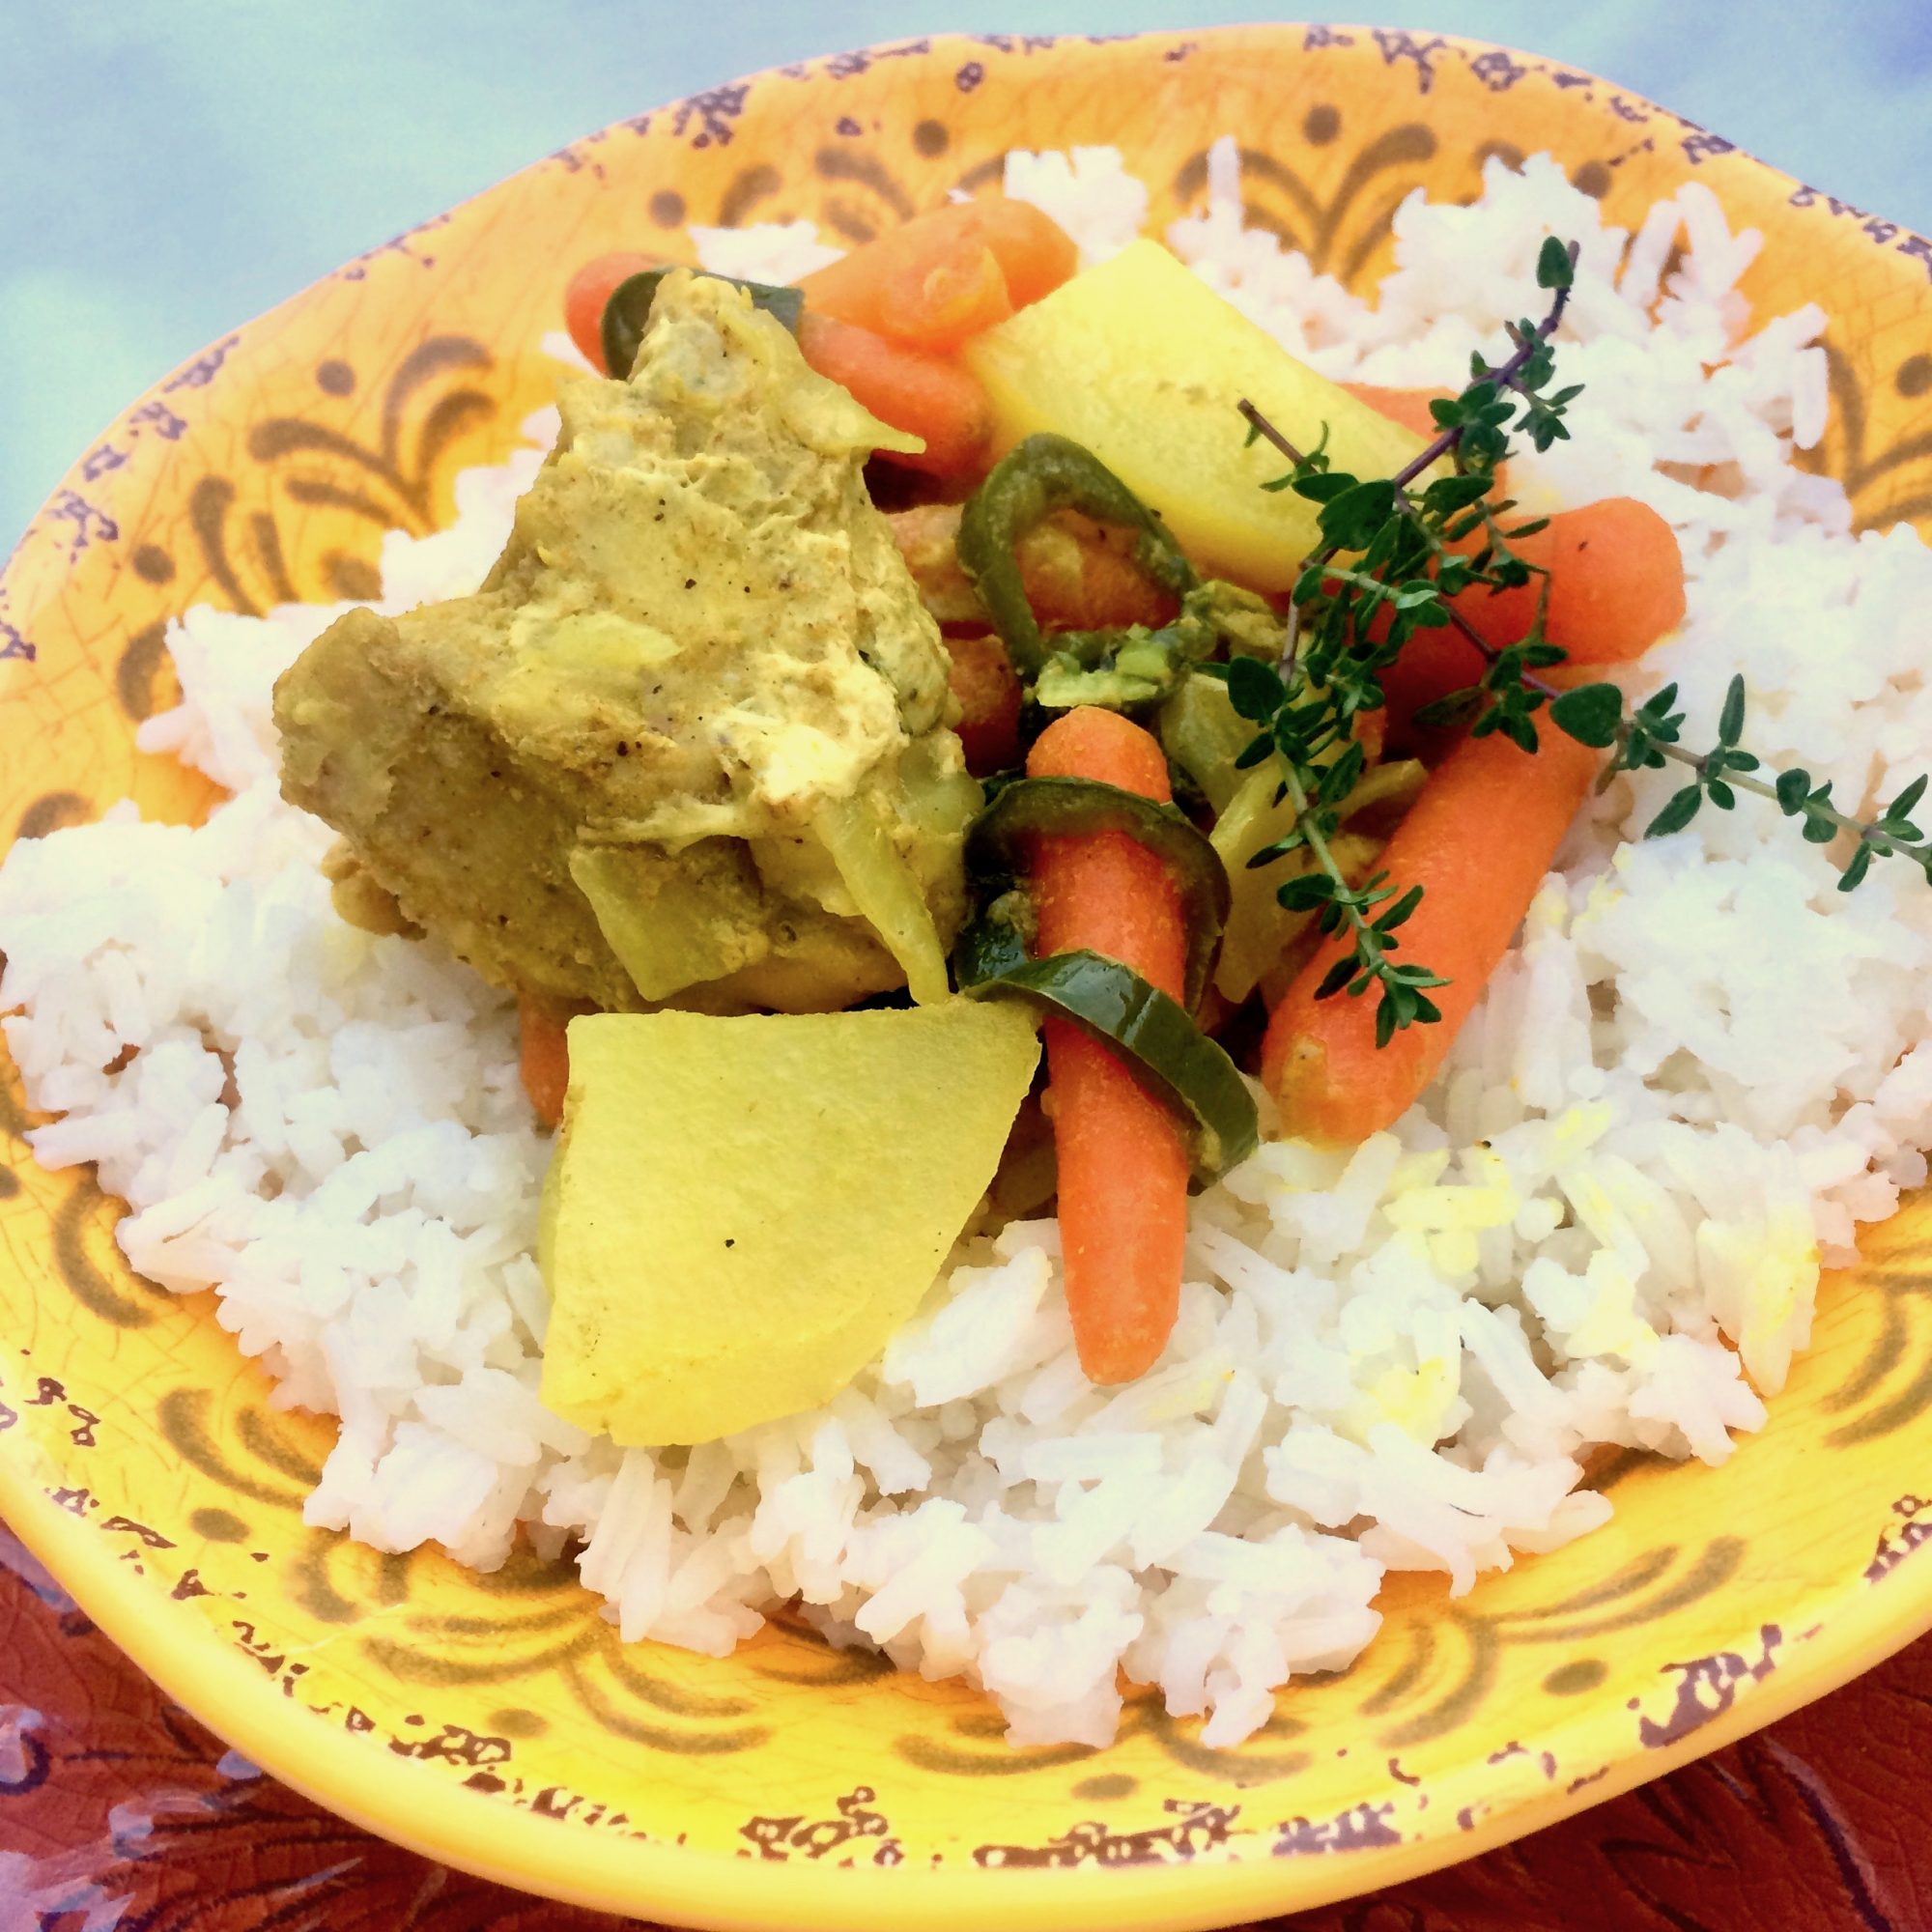 curried chicken and vegetables over rice